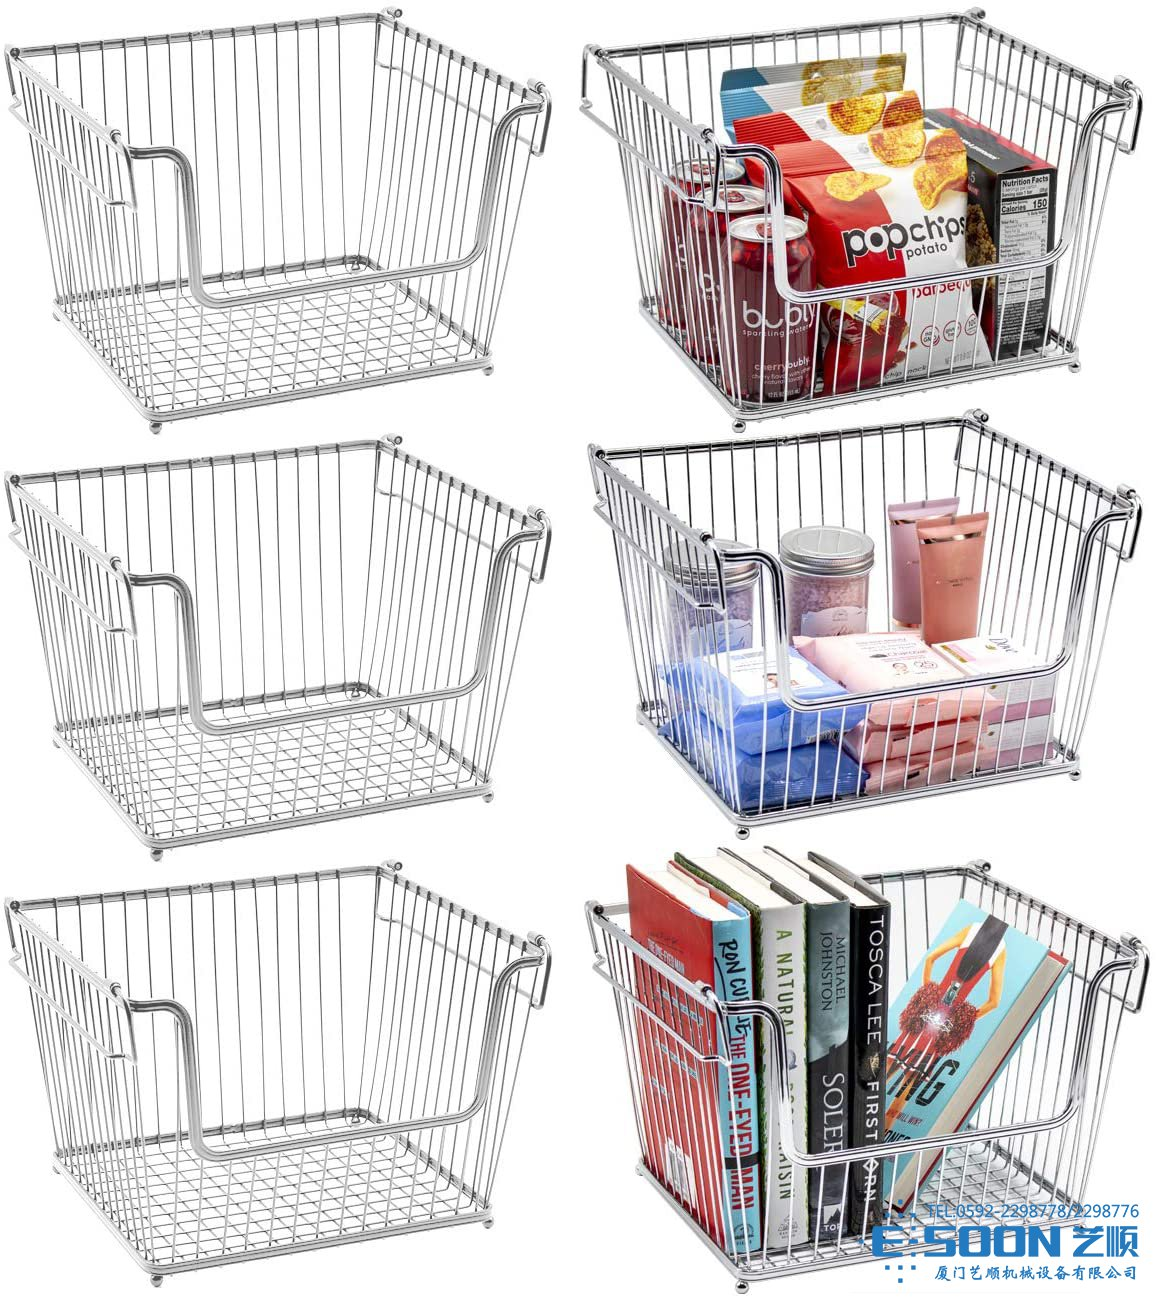 Sorbus Wire Metal Basket Bin, Stackable Storage Baskets, Cubby Bins for Food, Kitchen, Home, Pantry Snack, Vegetable, Potato, Onion, Laundry Room, Office, Farmhouse, Chrome (6-Pack, Silver)